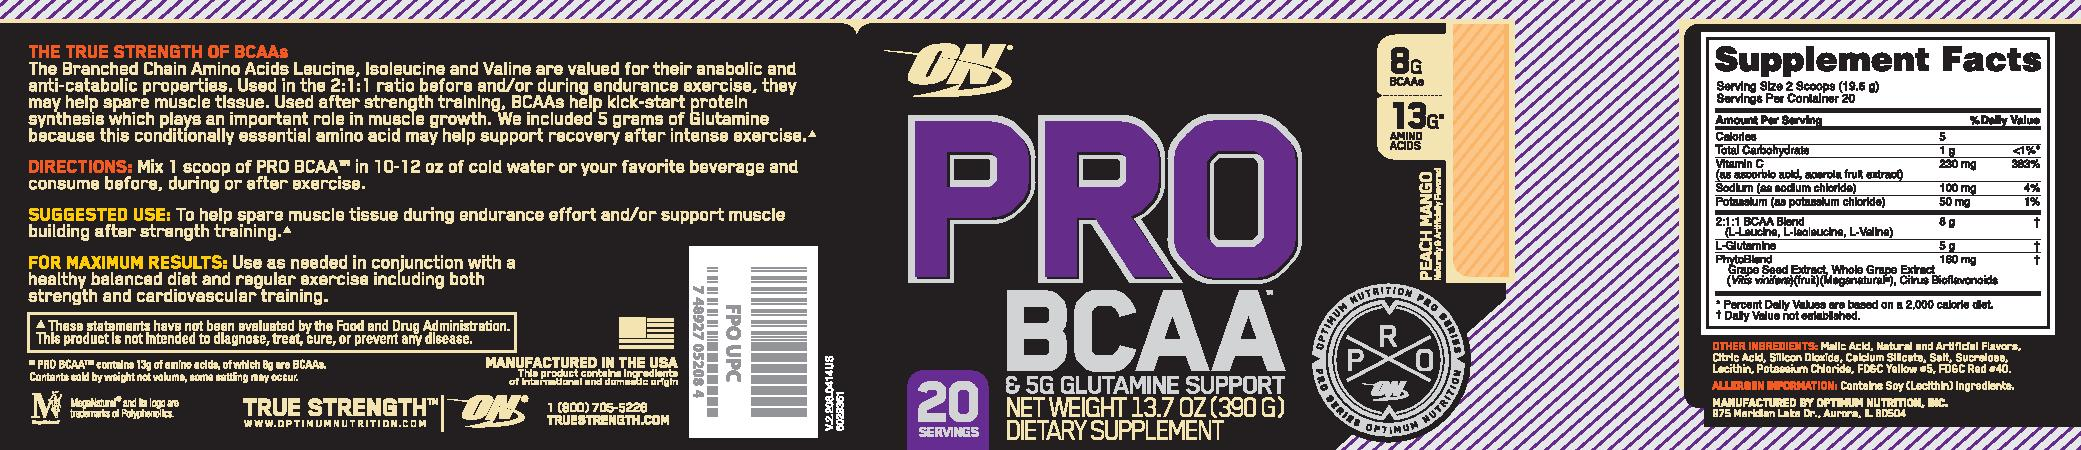 Optimum Nutrition Pro BCAA 390g - Peach Mango